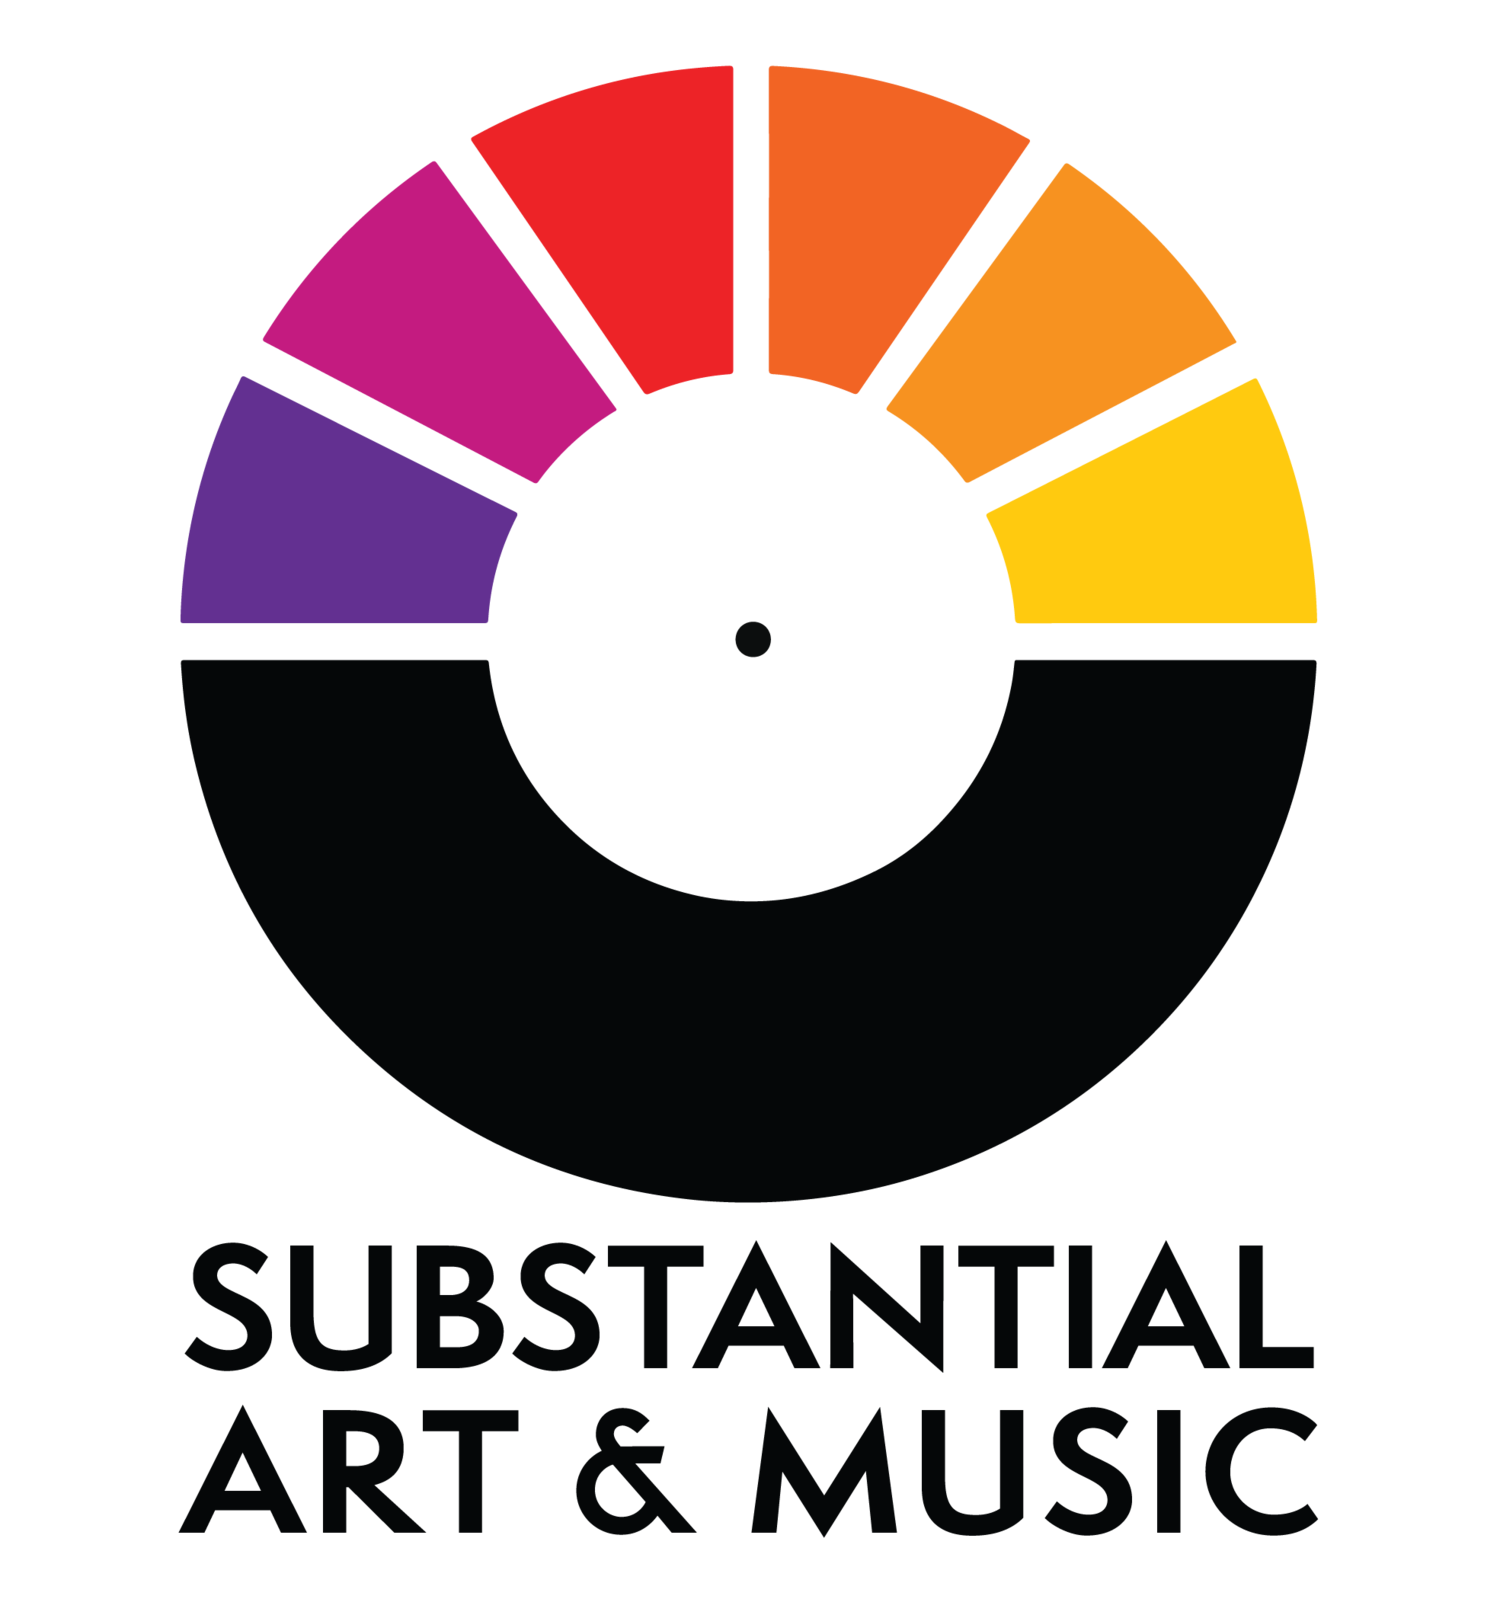 Substantial Art & Music, LLC